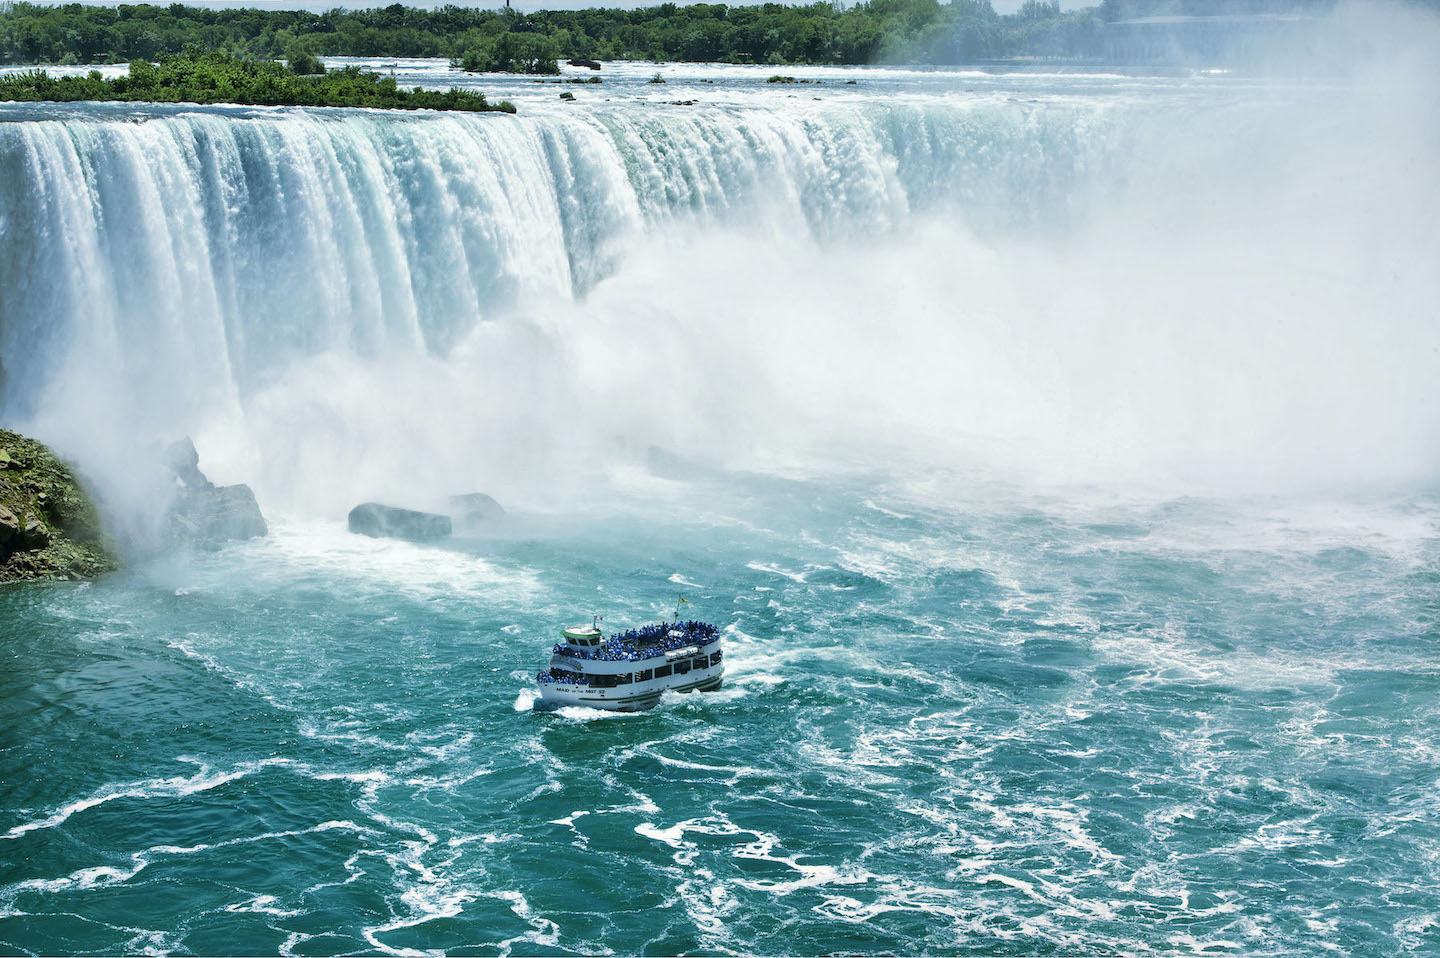 The mighty Maid of the Mist. (Images courtesy of Keenan Communications Group)